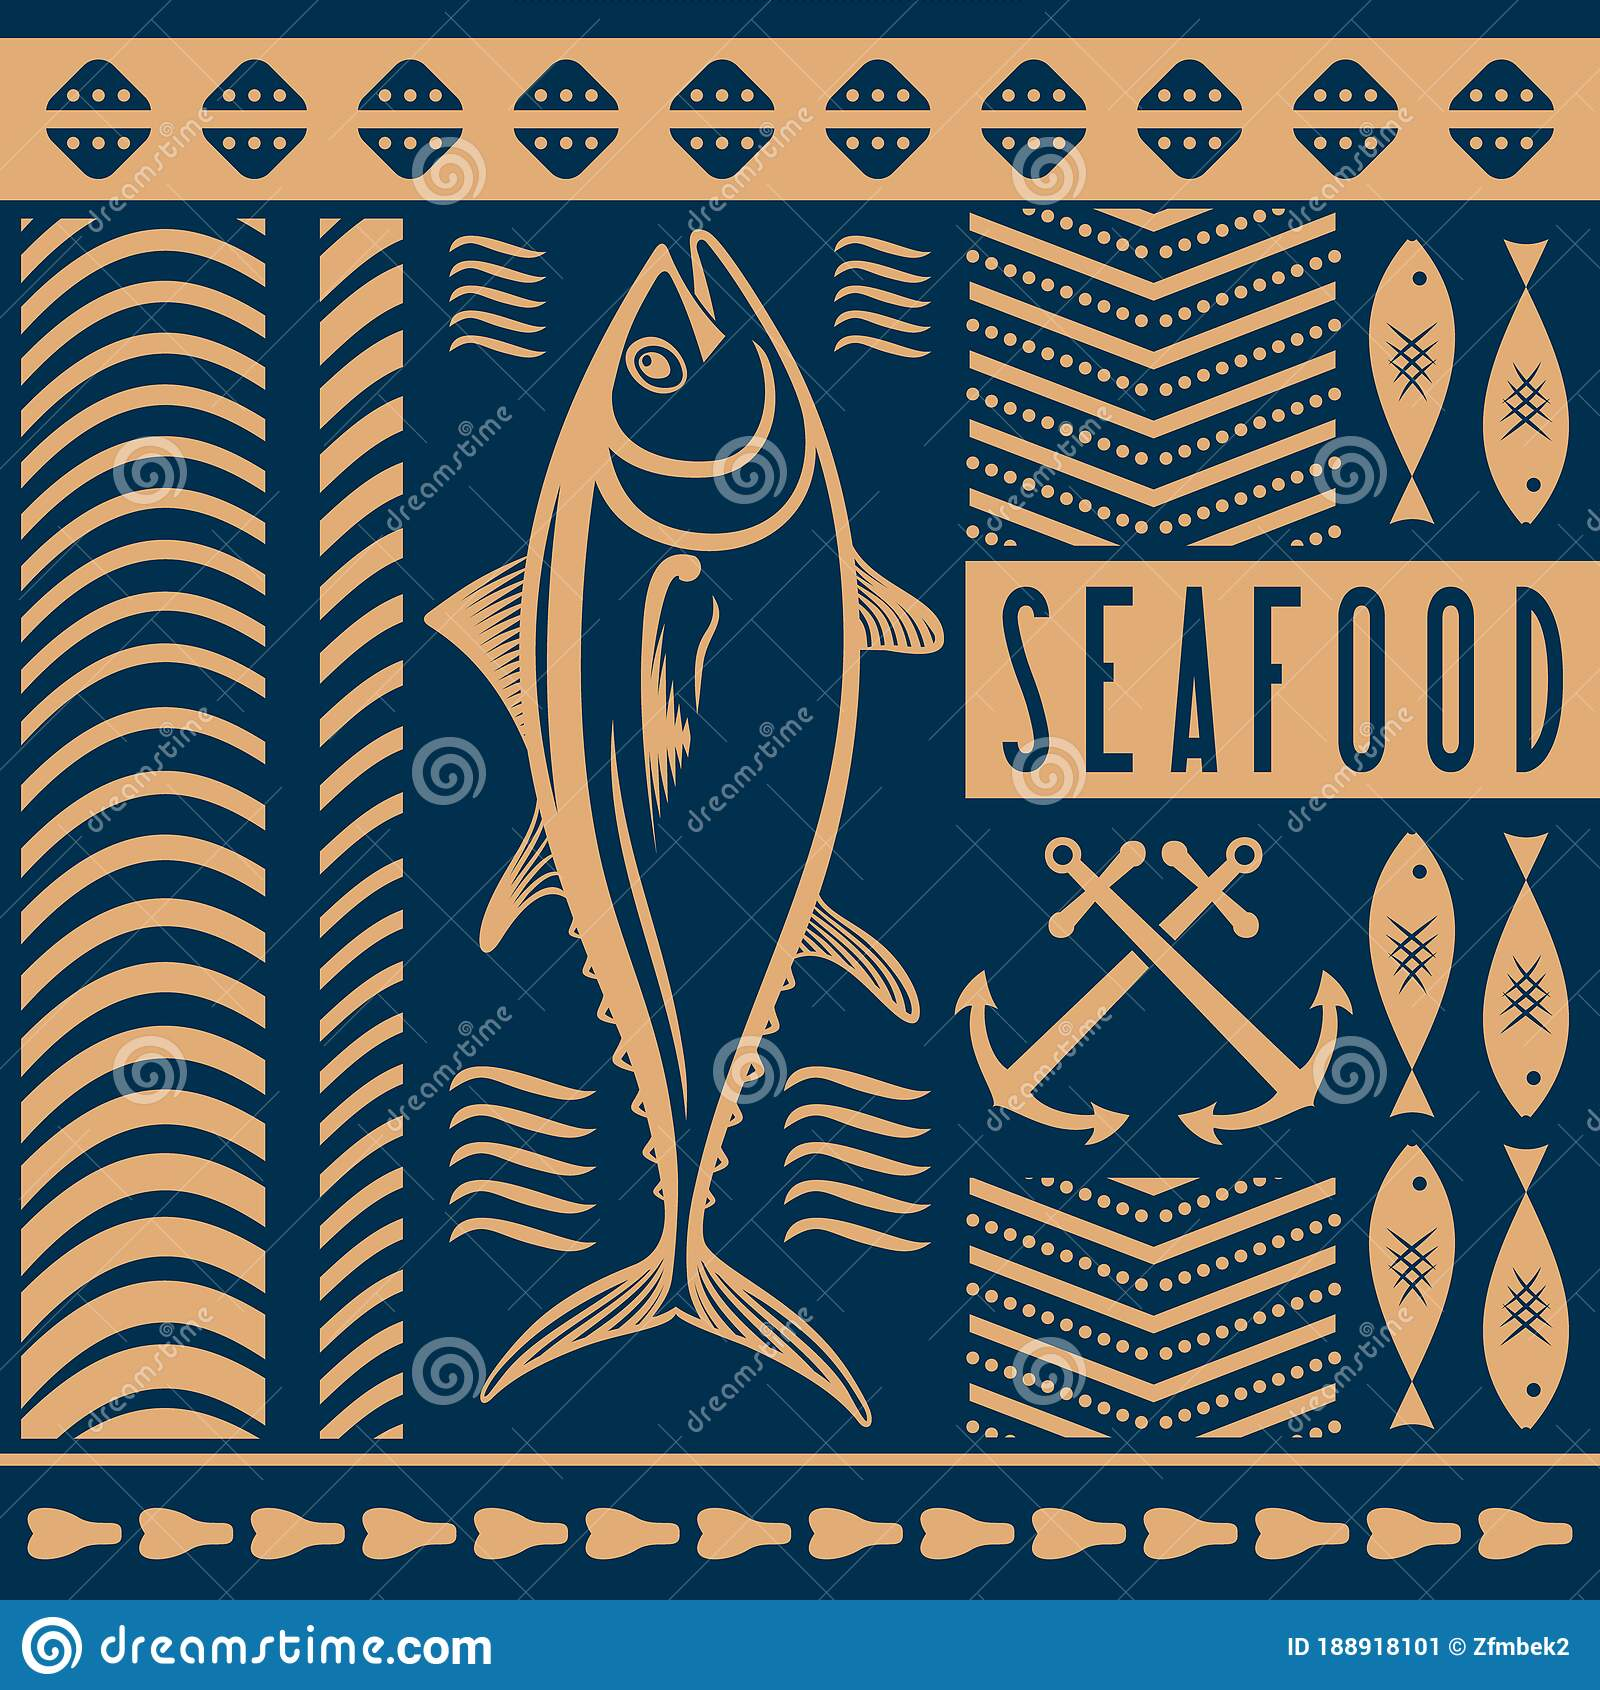 Seafood Restaurant Poster Banner Template With Tuna Fish Vector Illustration Stock Vector Illustration Of Food Cuisine 188918101